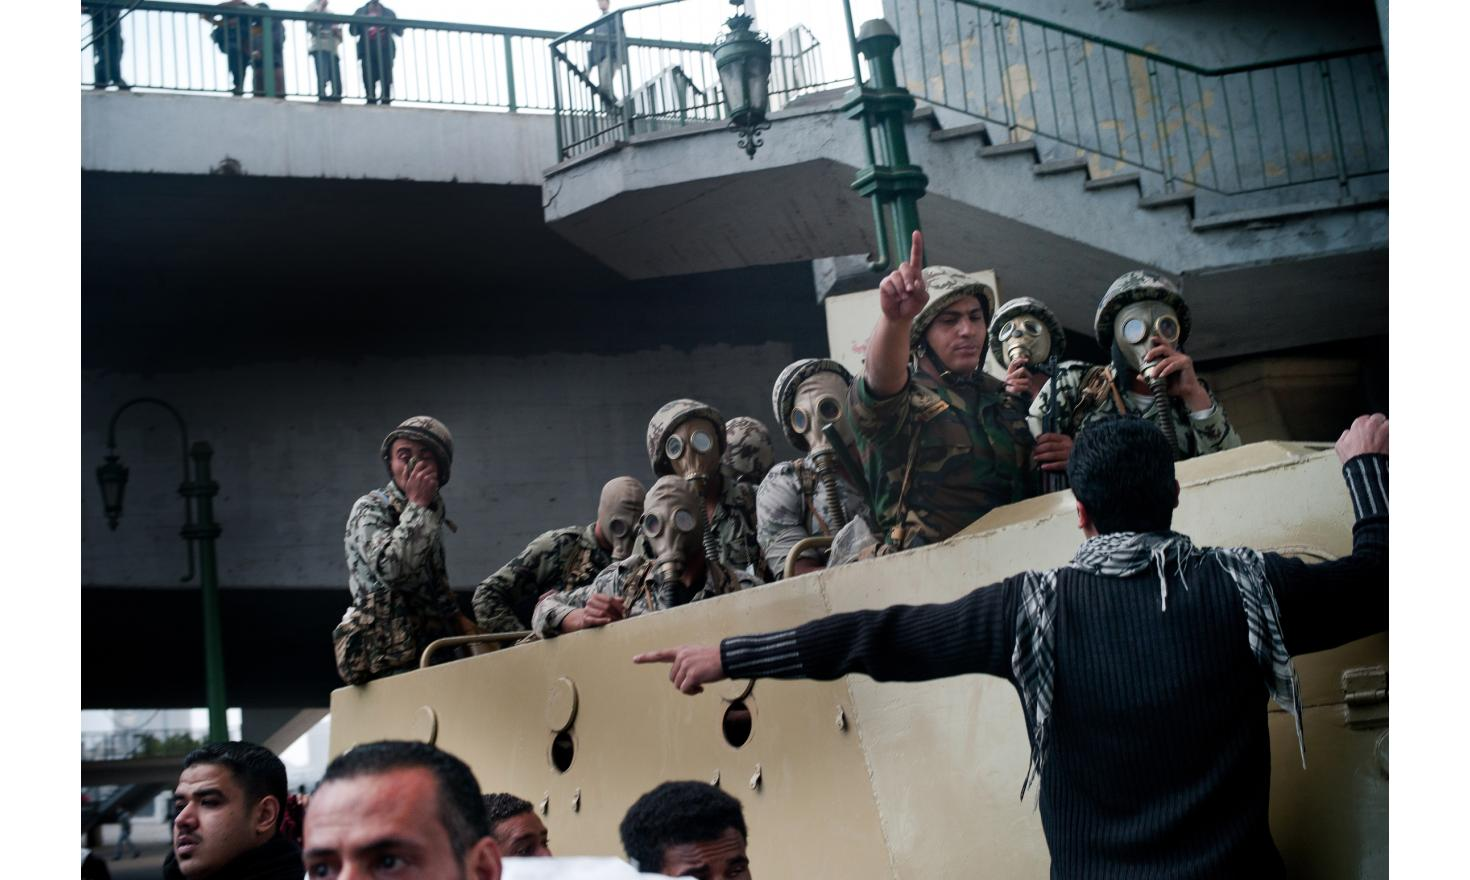 01/29 the army is deployed in Cairo